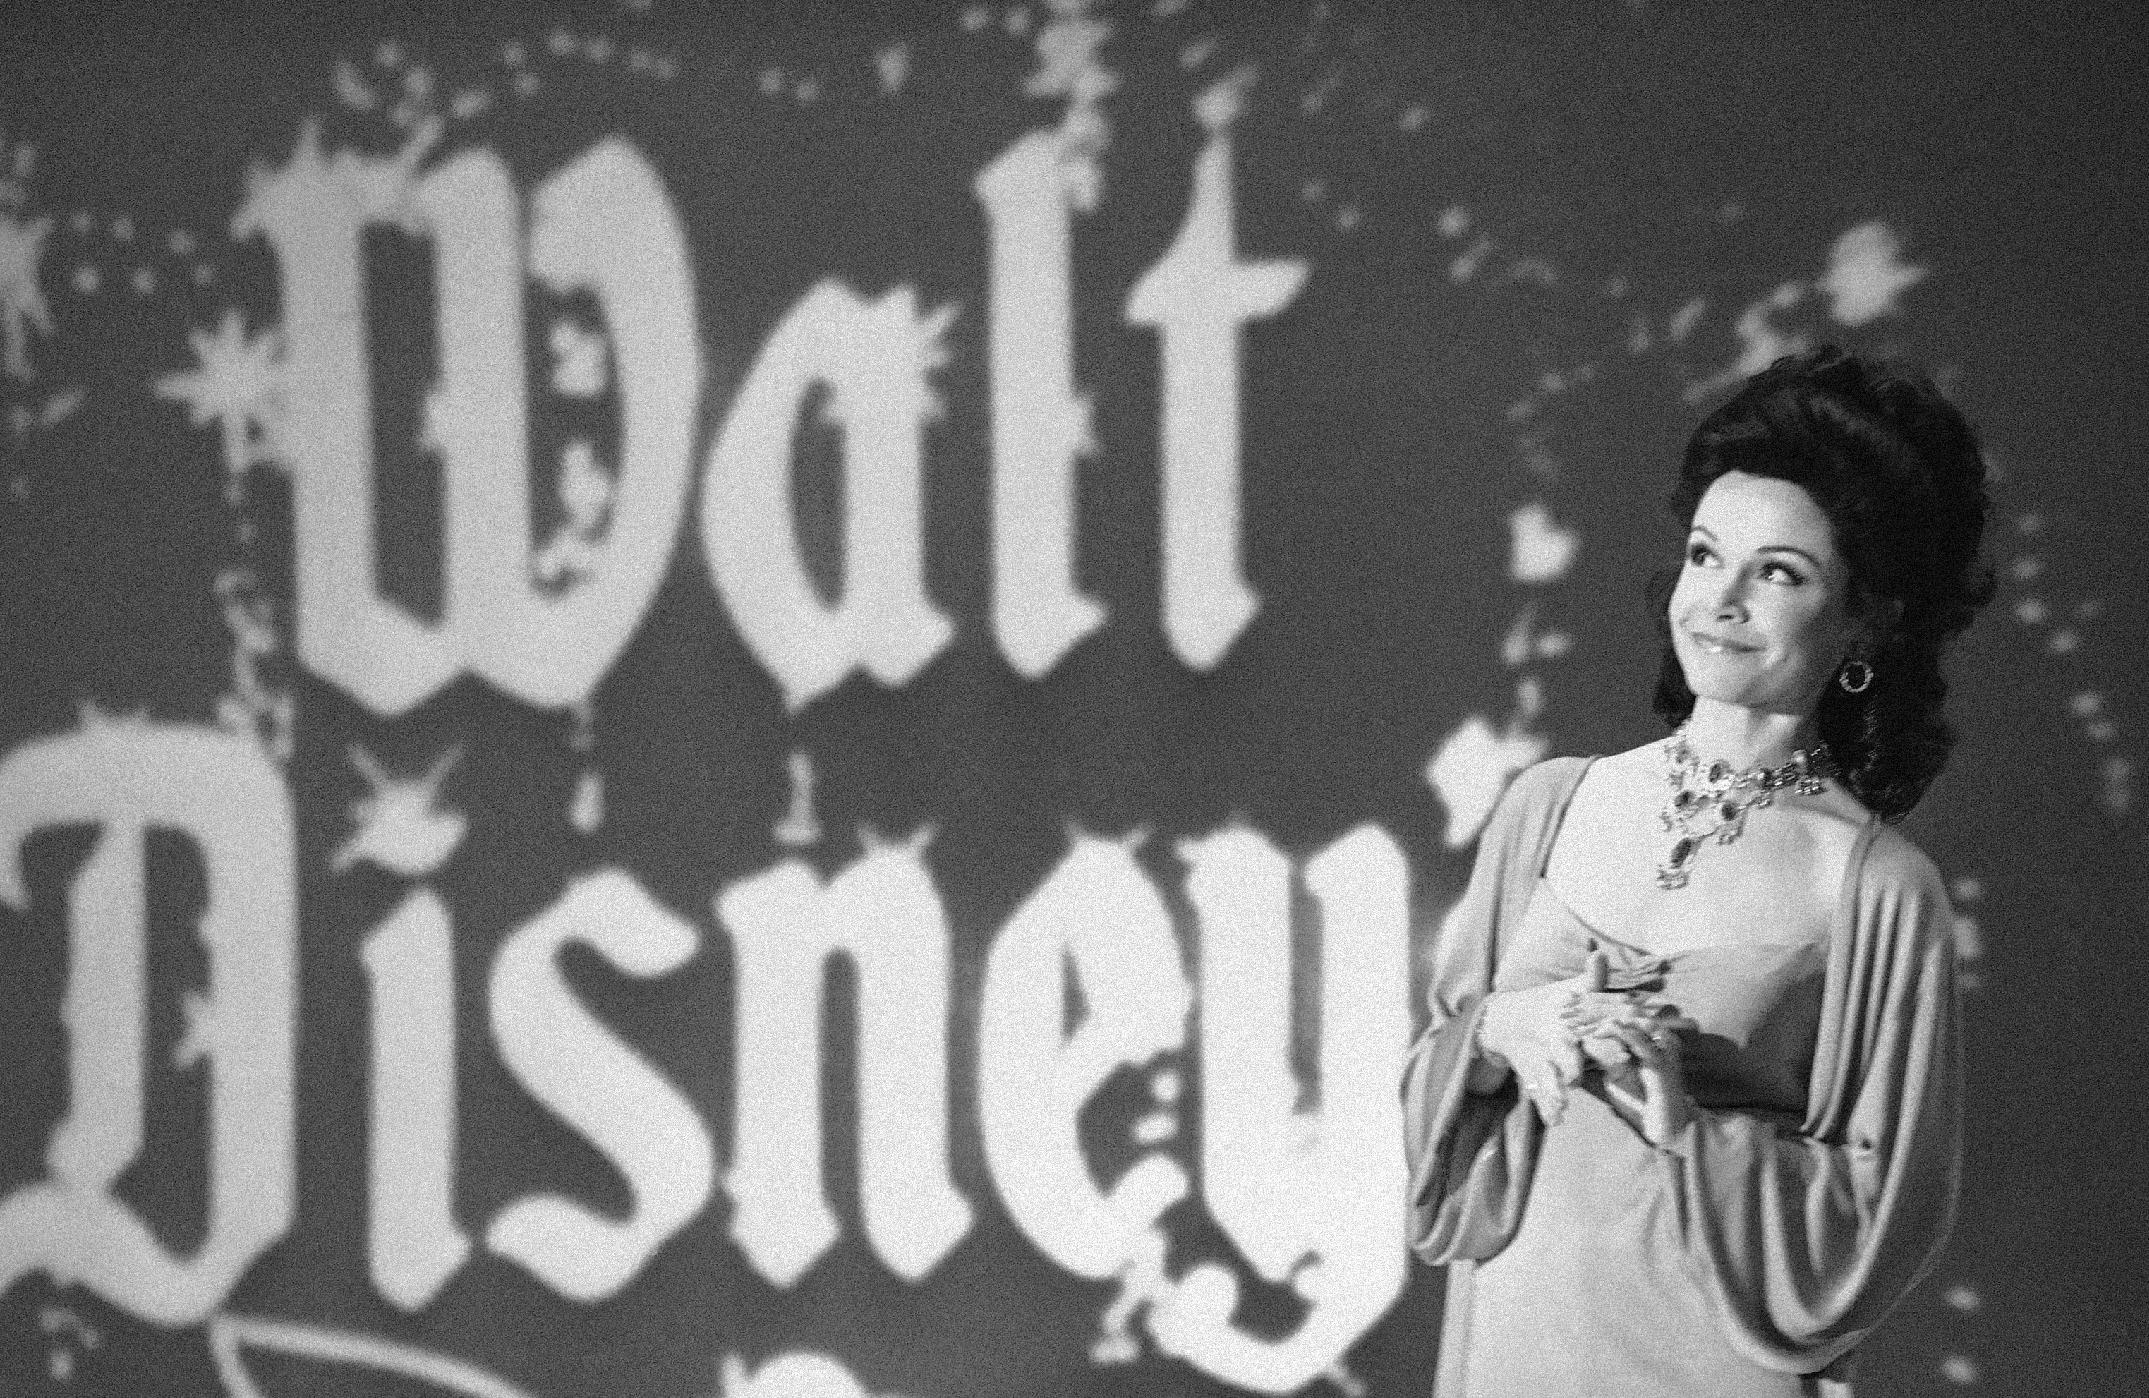 """FILE - In this Jan. 3, 1978 file photo, actress Annette Funicello recalls moments when she played a """"Mouseketeer"""" on ABC's first successful daytime television show,""""The Mickey Mouse Club"""" in Los Angeles, while she was taping an ABC Silver Anniversary Celebration special. Walt Disney Co. says, Monday, April 8, 2013, that Funicello, also known for her beach movies with Frankie Avalon, has died at age 70. (AP Photo/Lennox McLendon, File)"""